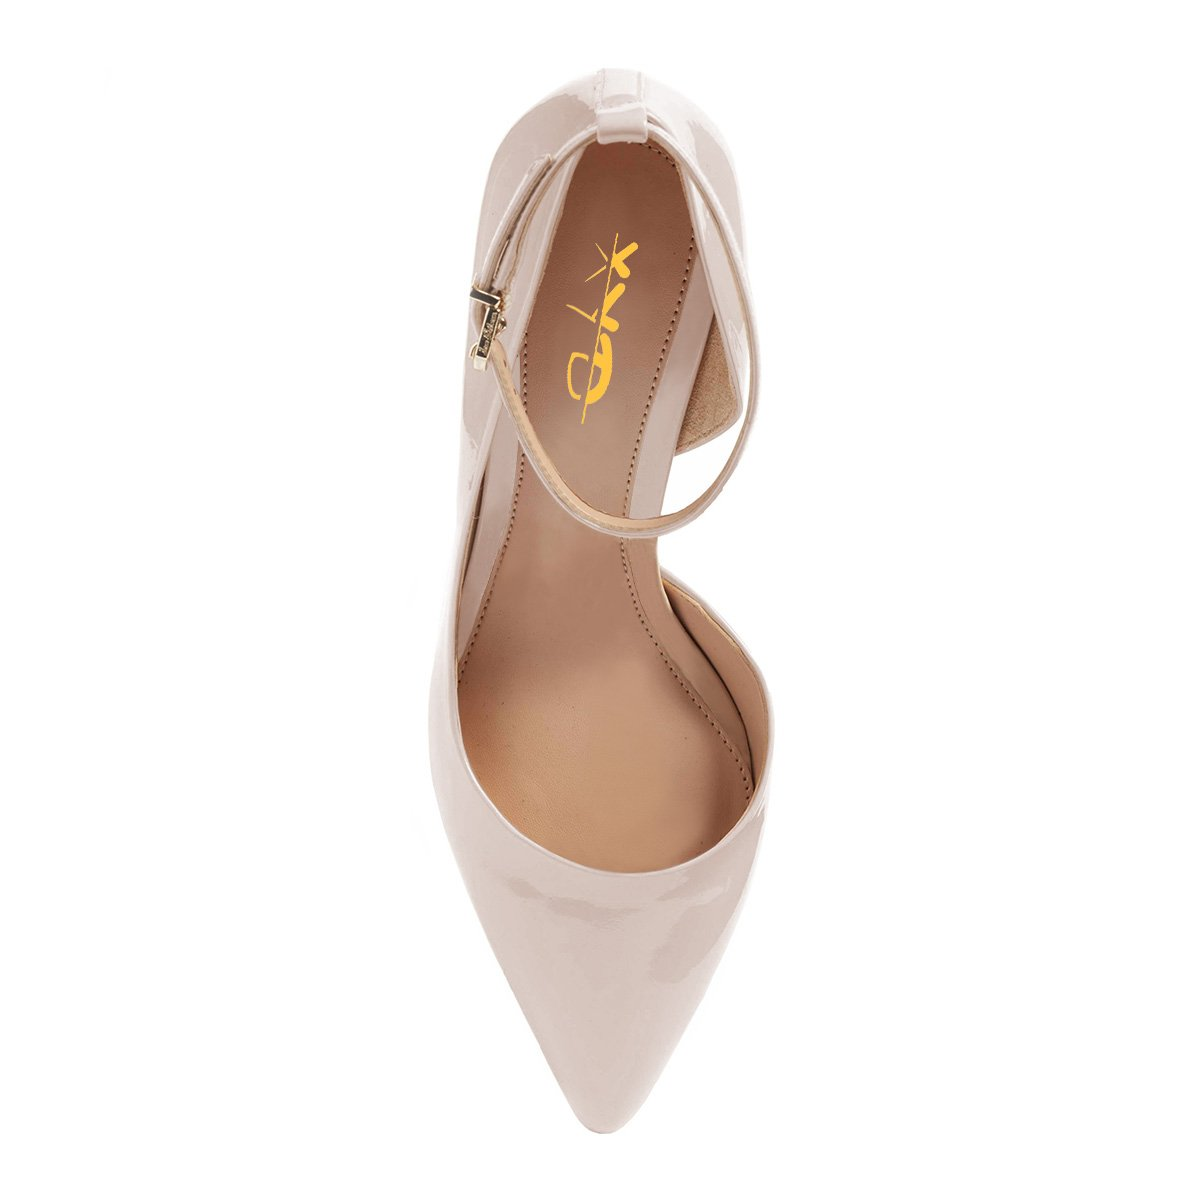 XYD Women Pointed Toe D'Orsay Mid Heel Pumps Ankle Strap Buckled Wedding Party Dress Shoes B078XQ7FXW 8.5 B(M) US|Beige